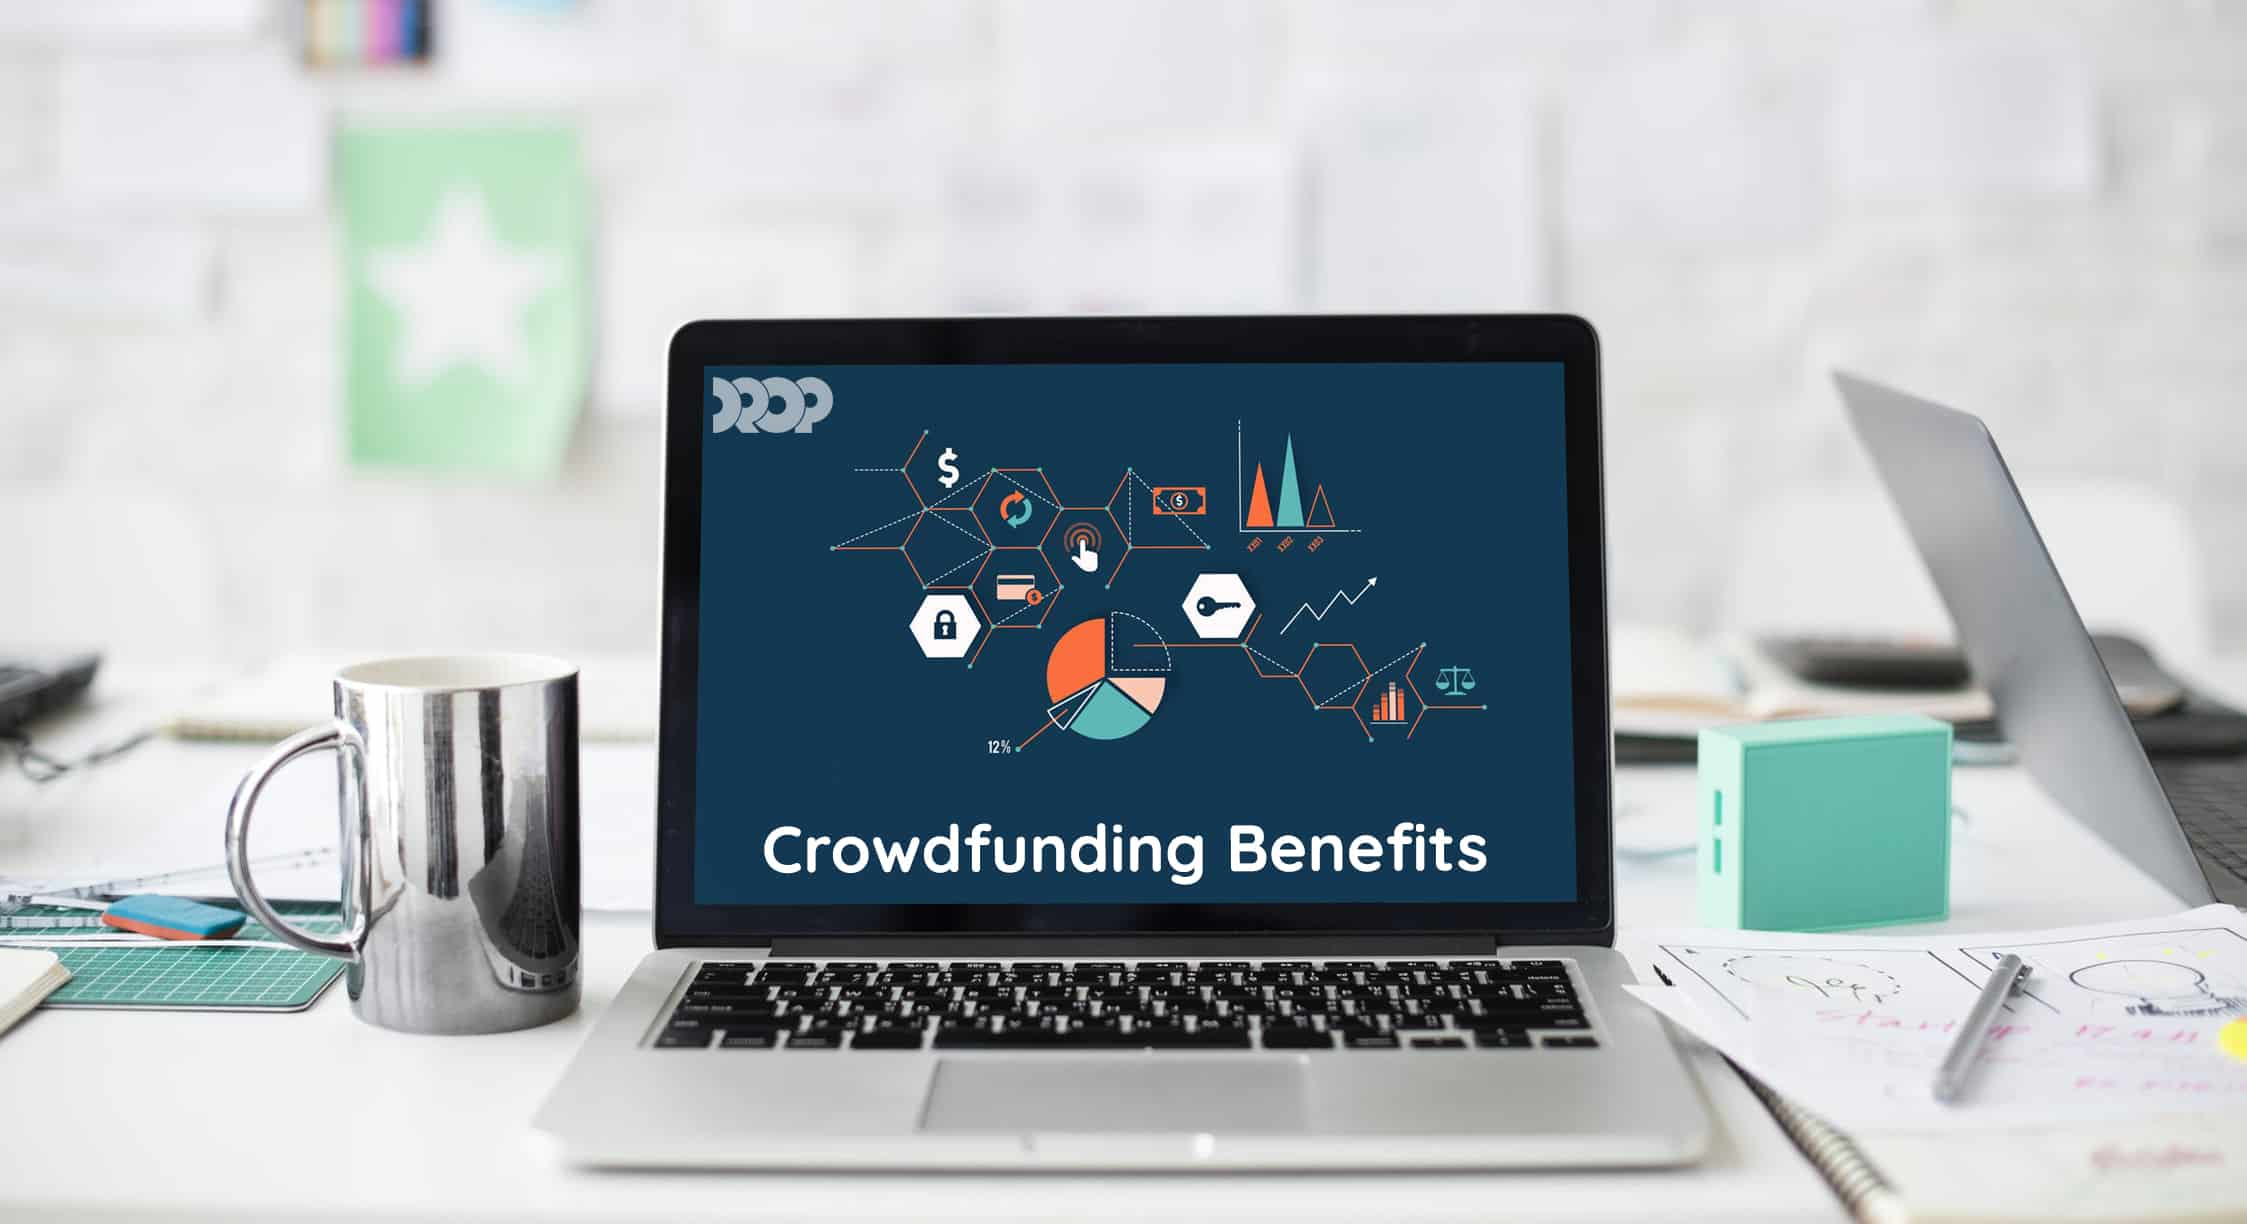 How does crowdfunding work - crowdfunding benefits